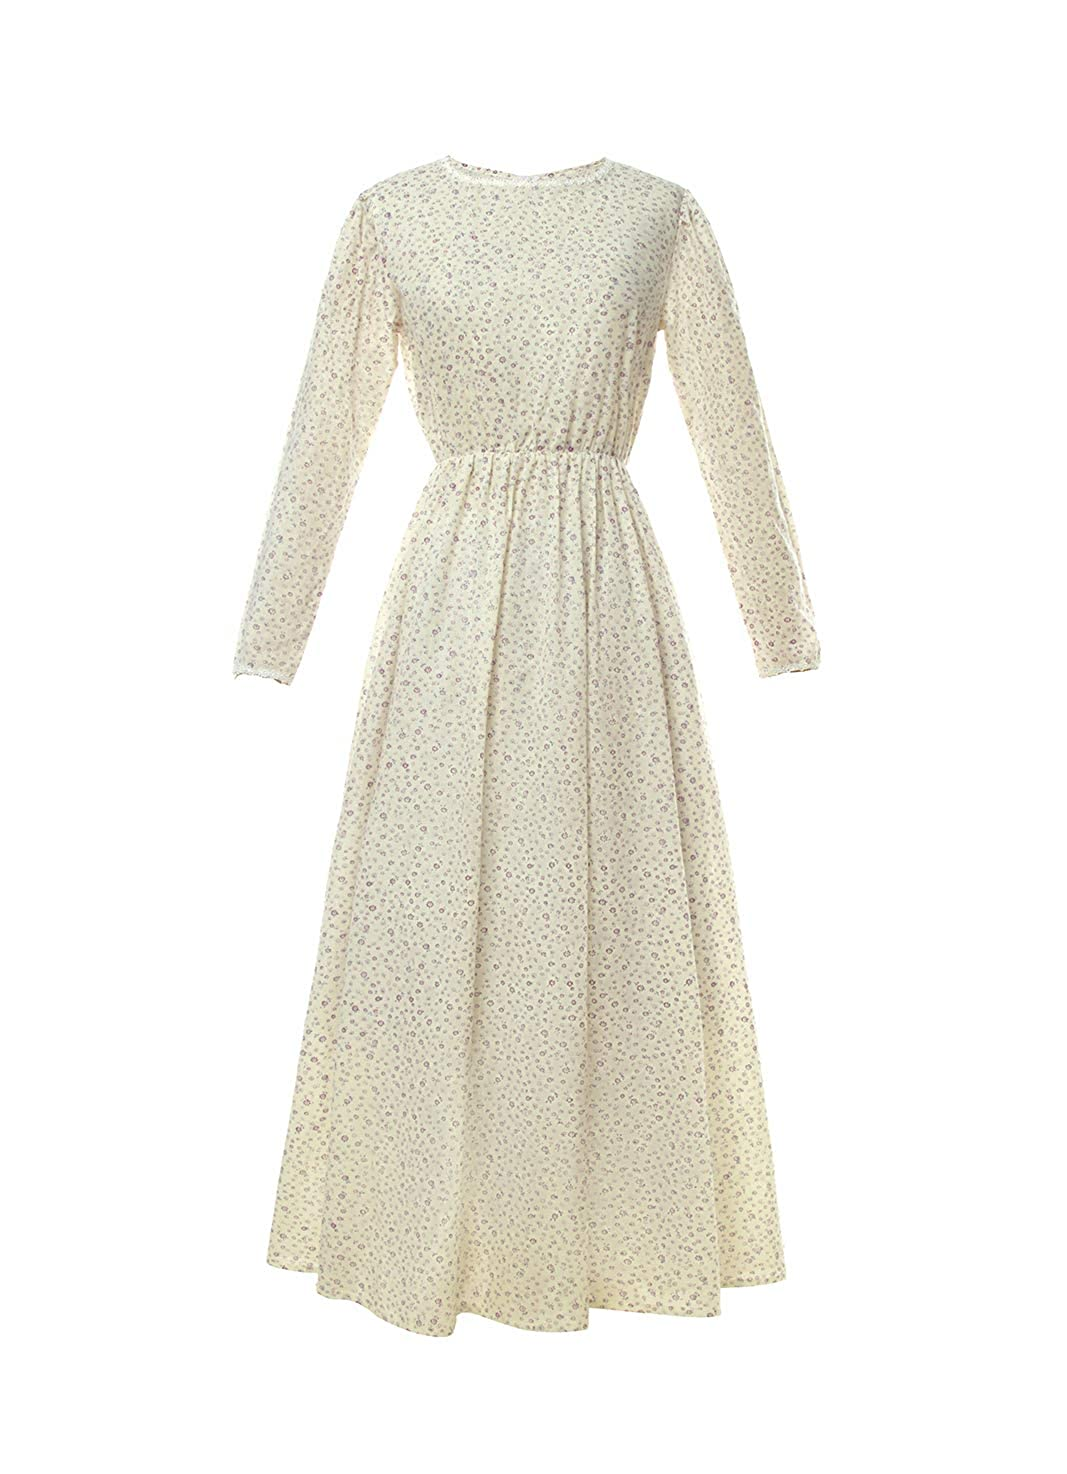 1900 Edwardian Dresses, Tea Party Dresses, White Lace Dresses ROLECOS Pioneer Women Costume Floral Prairie Dress Deluxe Colonial Dress Laura Ingalls Costume $31.99 AT vintagedancer.com